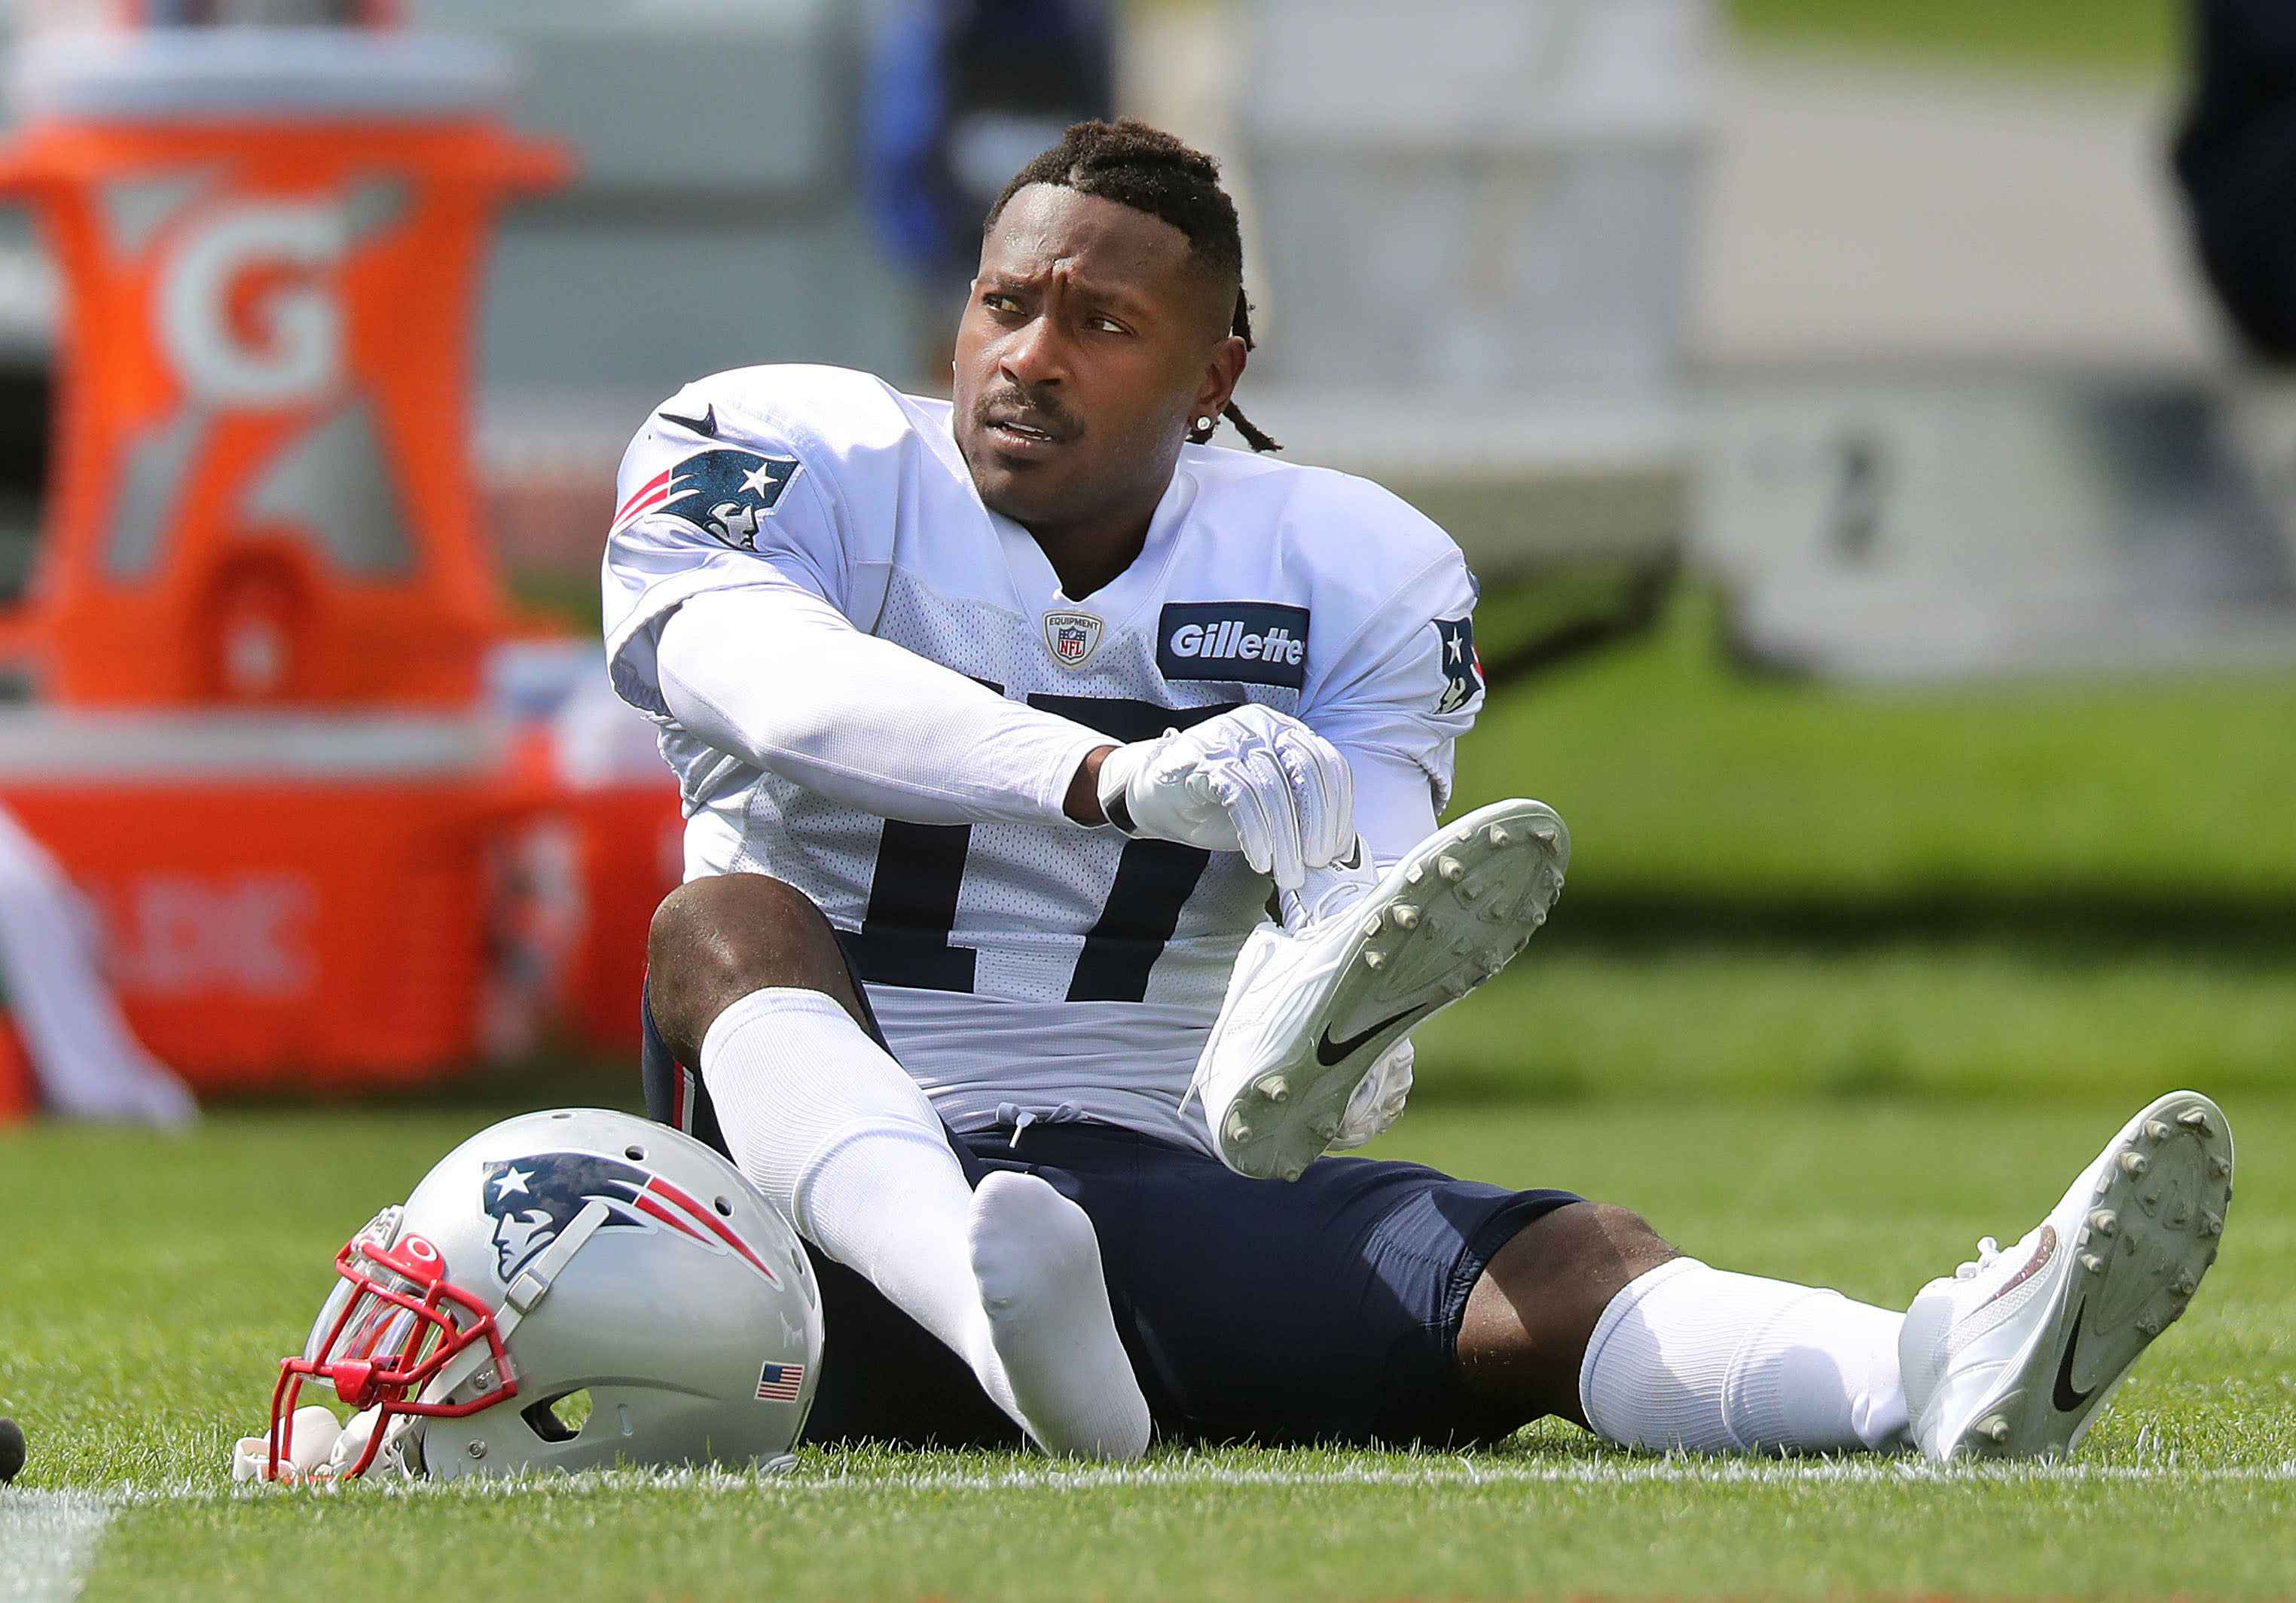 Antonio Brown released by New England Patriots after rape accusations